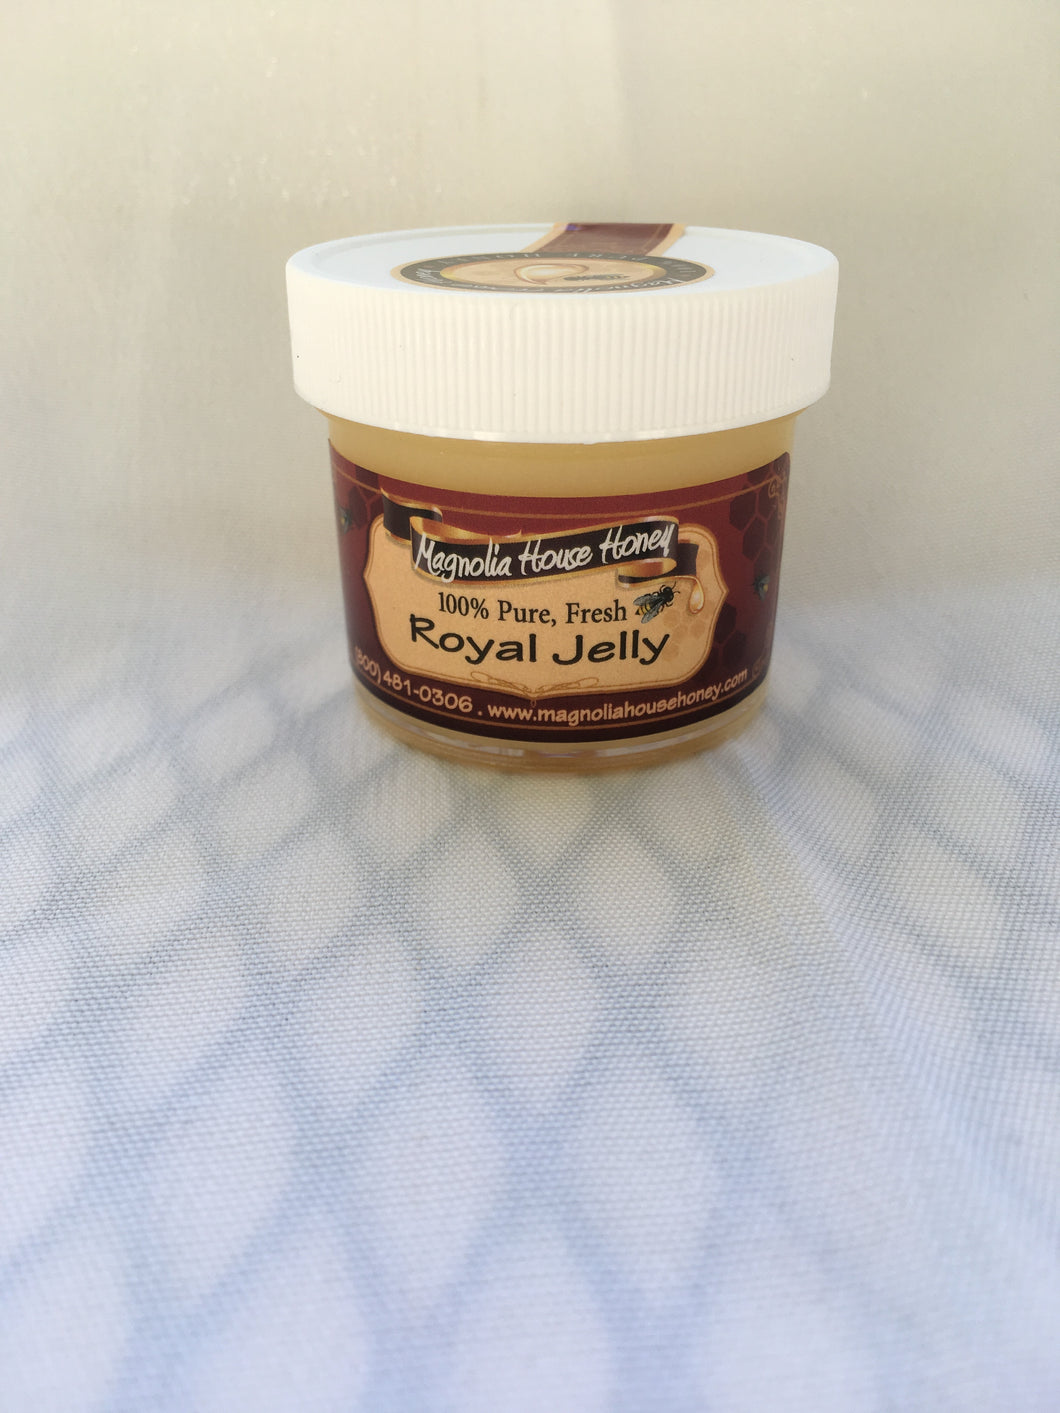 Royal Jelly 2oz - Magnolia House Honey